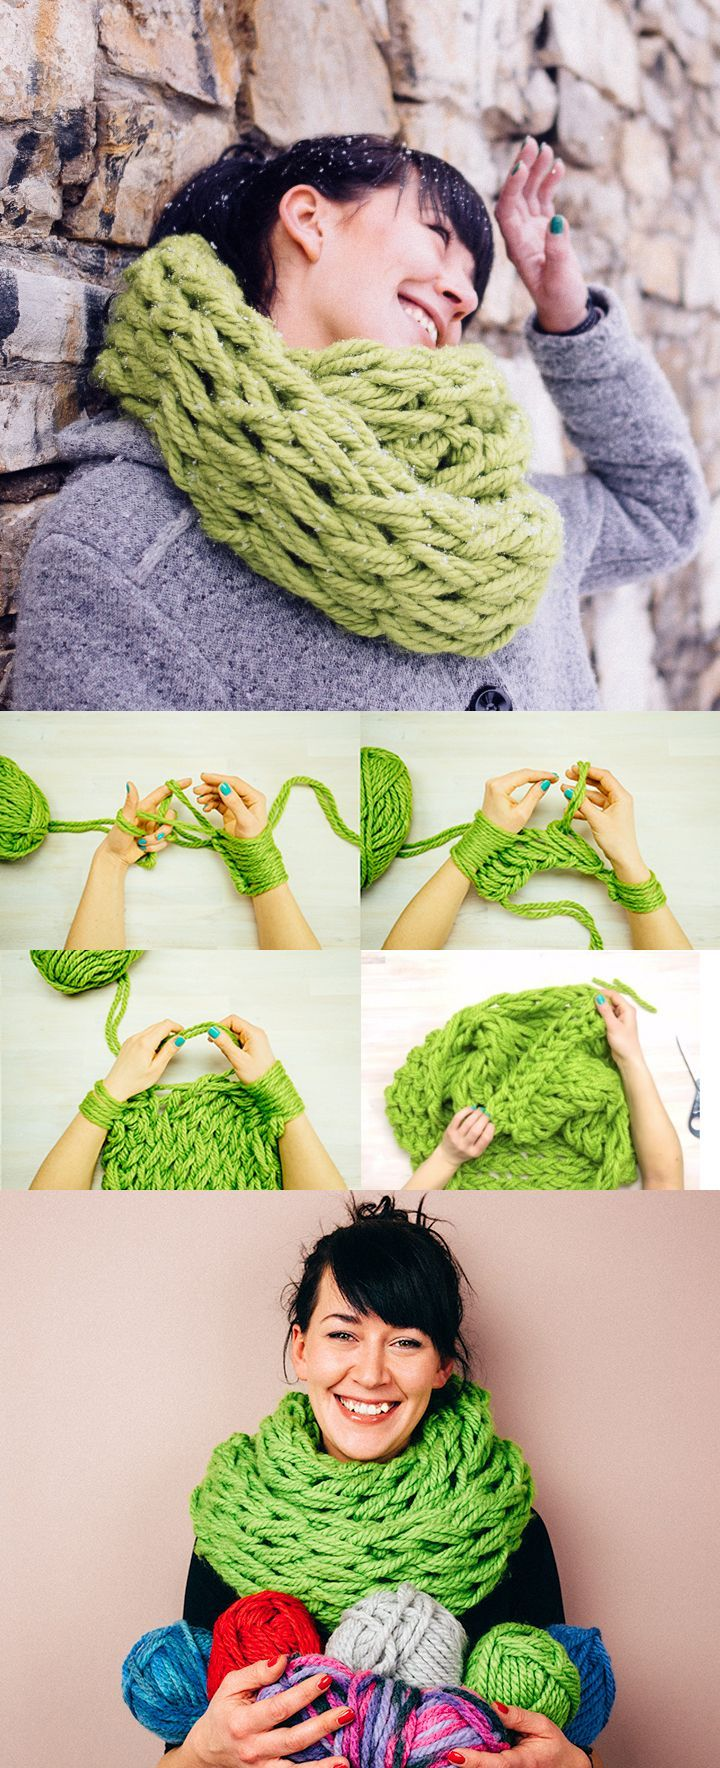 DIY 30-Minute Infinity Scarf | Viral On Web, YES! I've always wanted to make one of these!